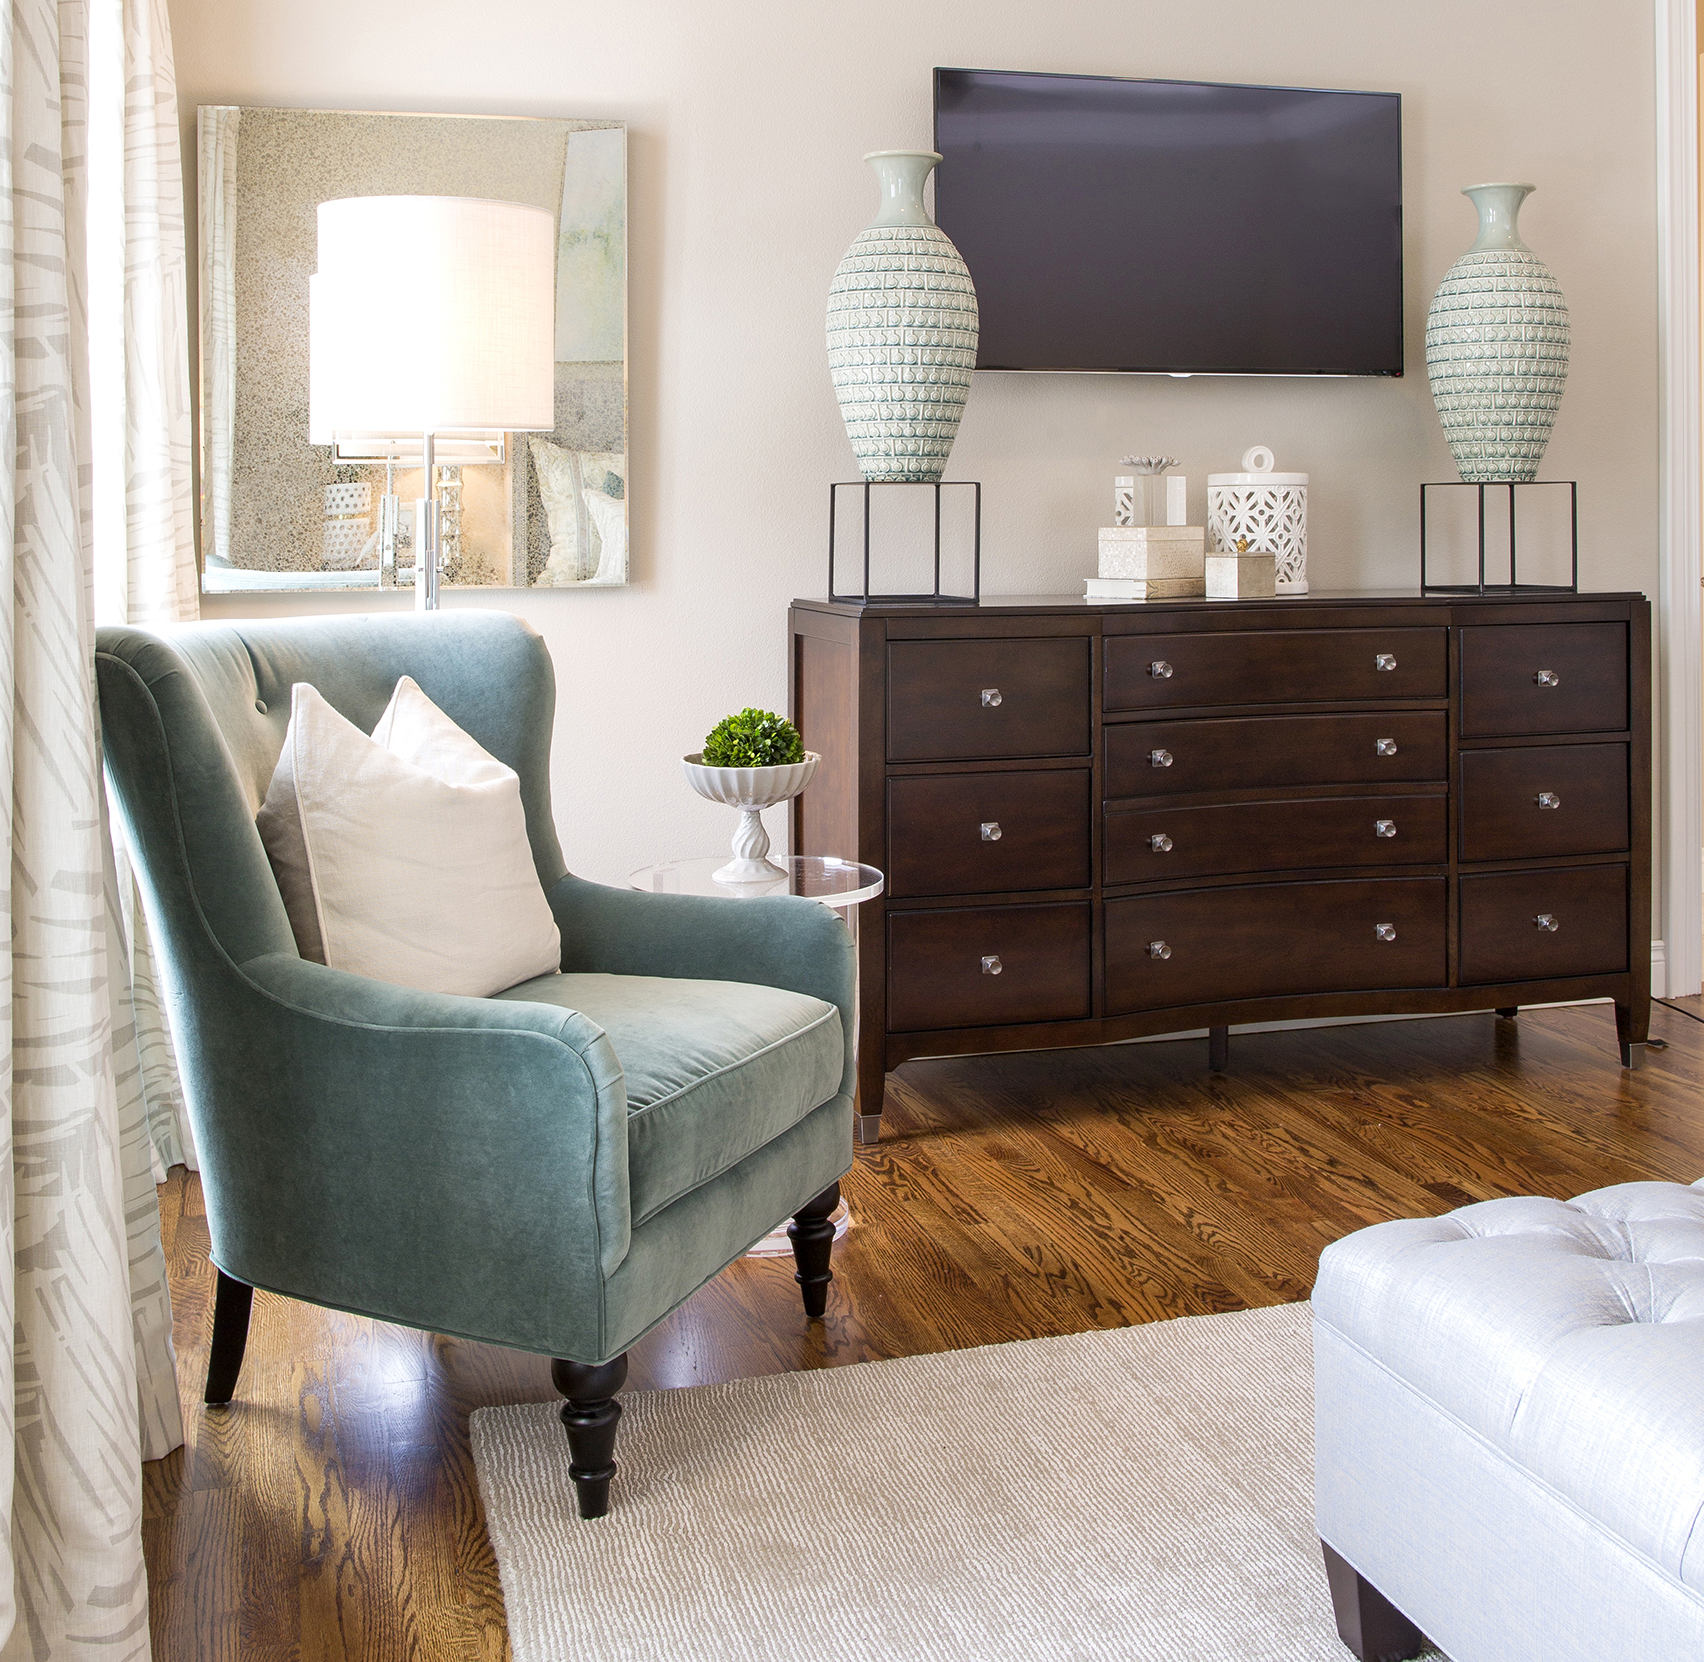 Master Bedroom Oasis ay mag » ay is about you » atyh: master bedroom – modern oasis